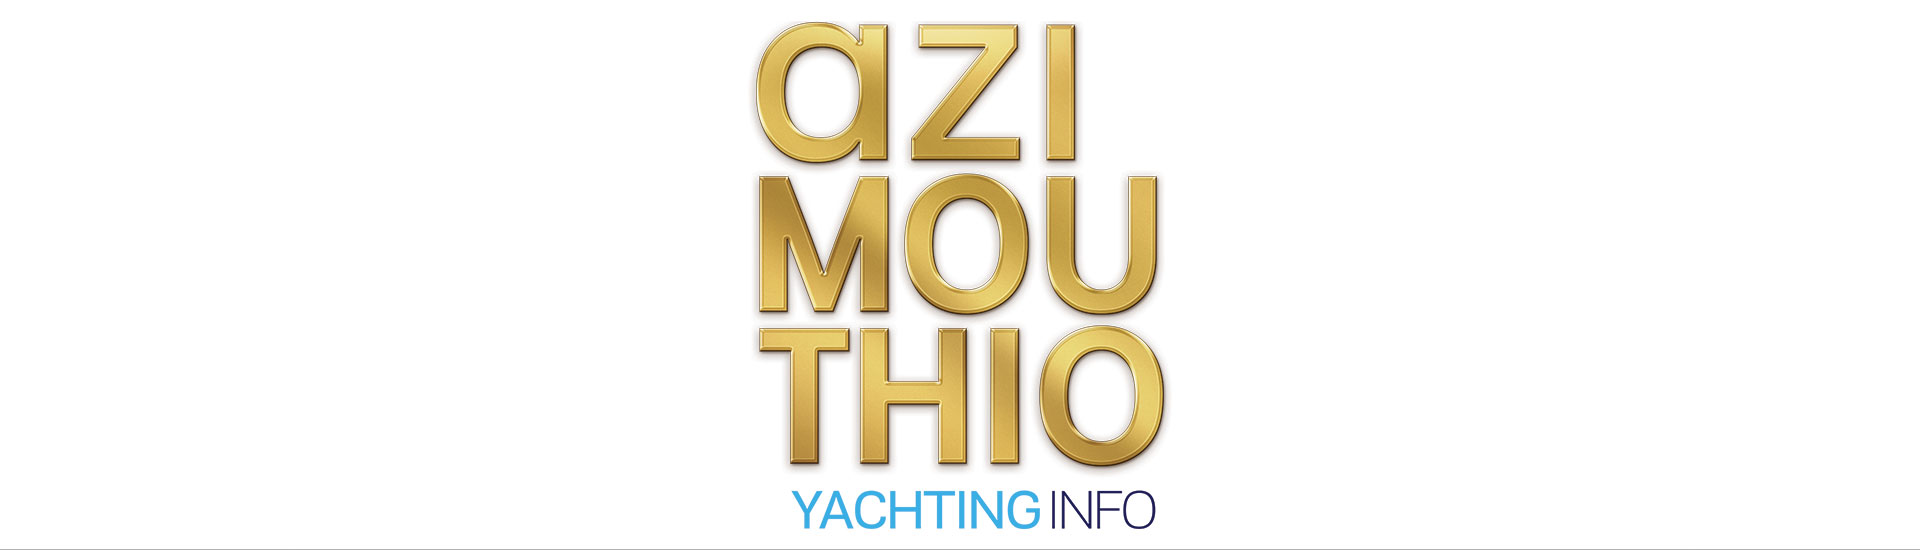 1_azimouthio_yachting_info_directory